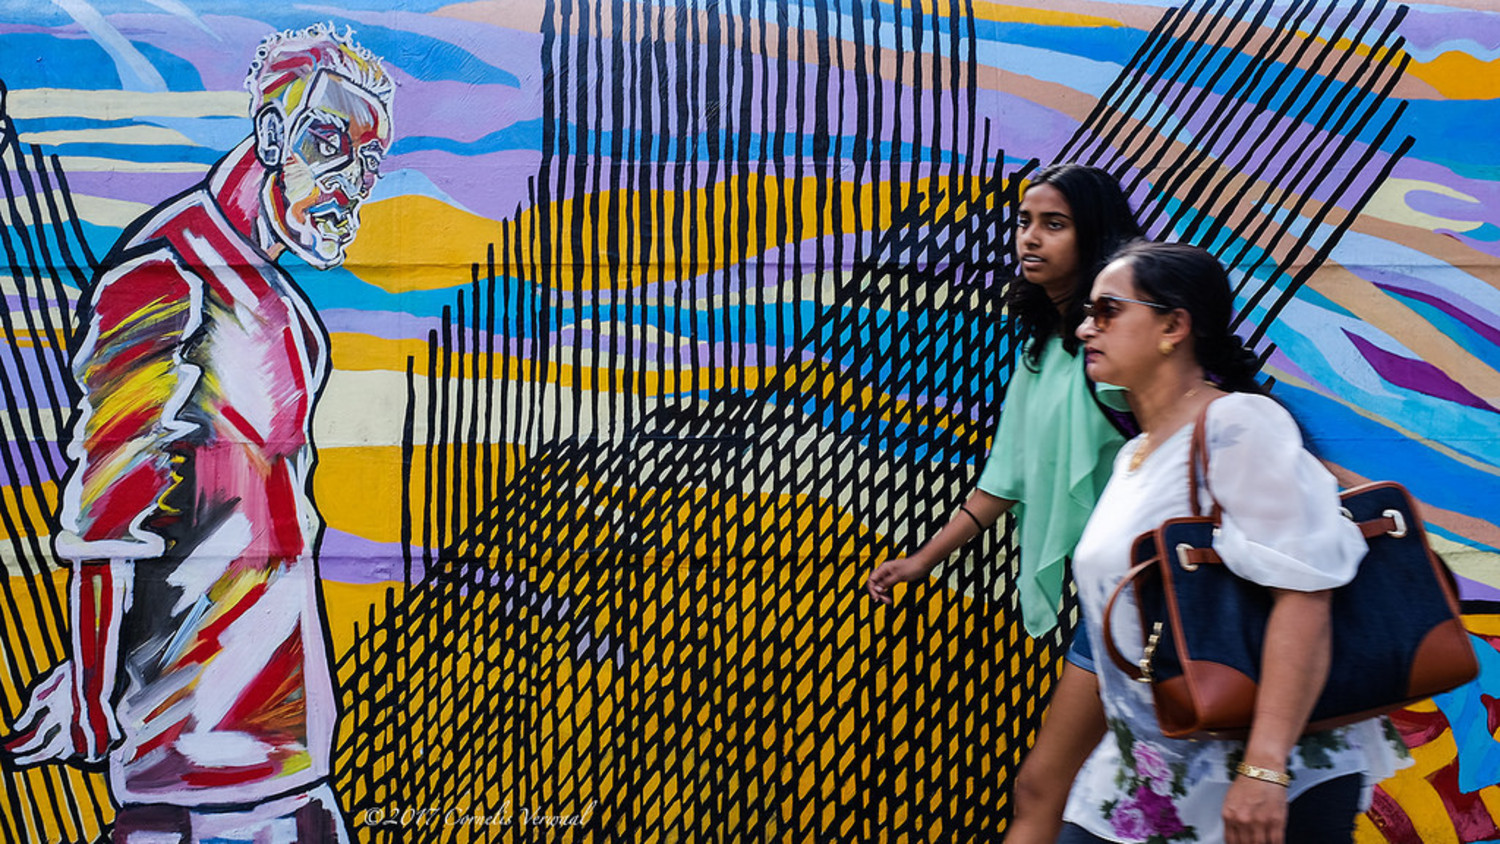 NYC Mural Arts Project, 34th Street